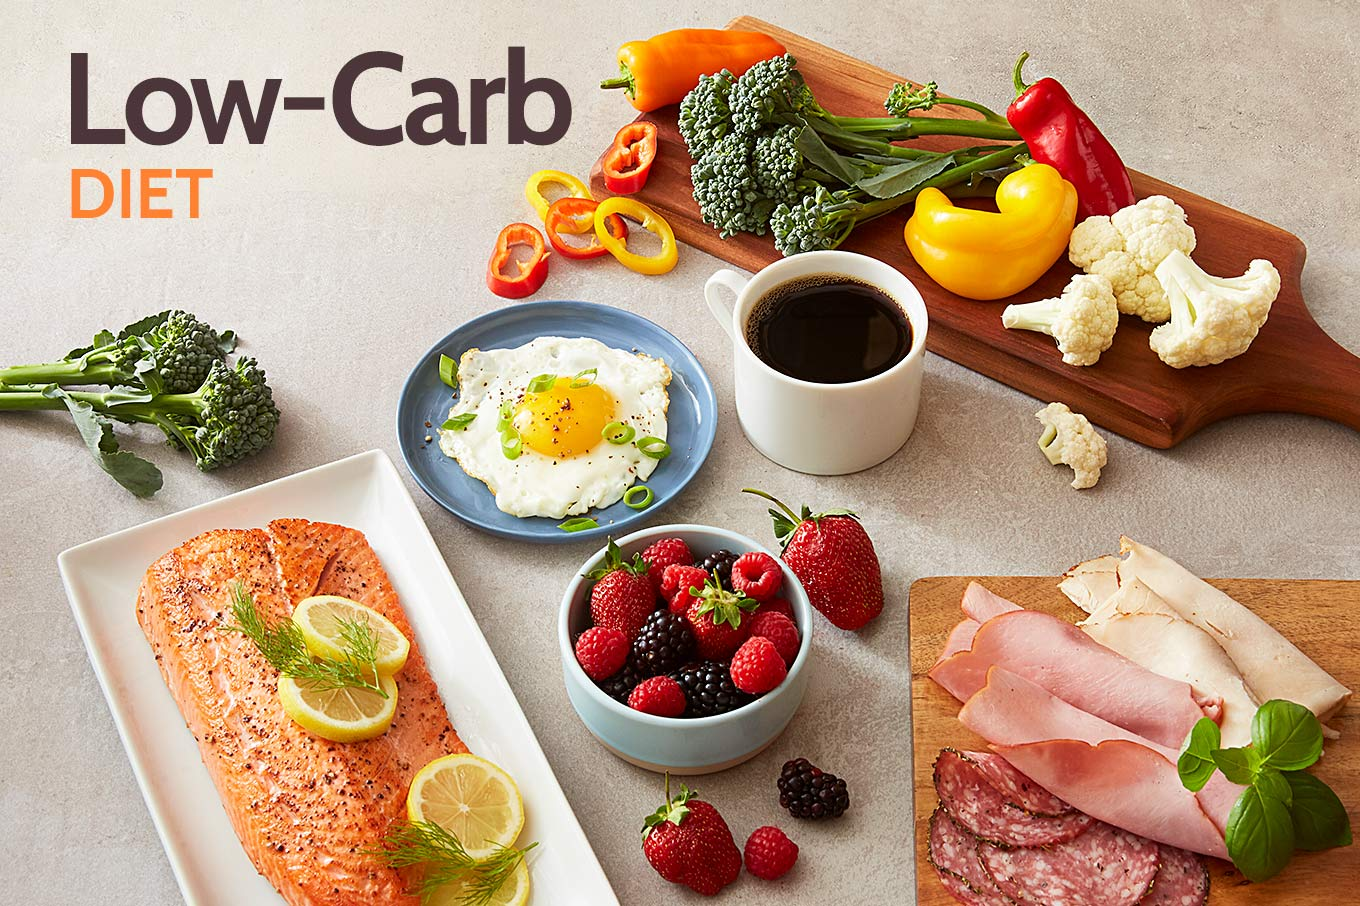 Starting a low-carb diet